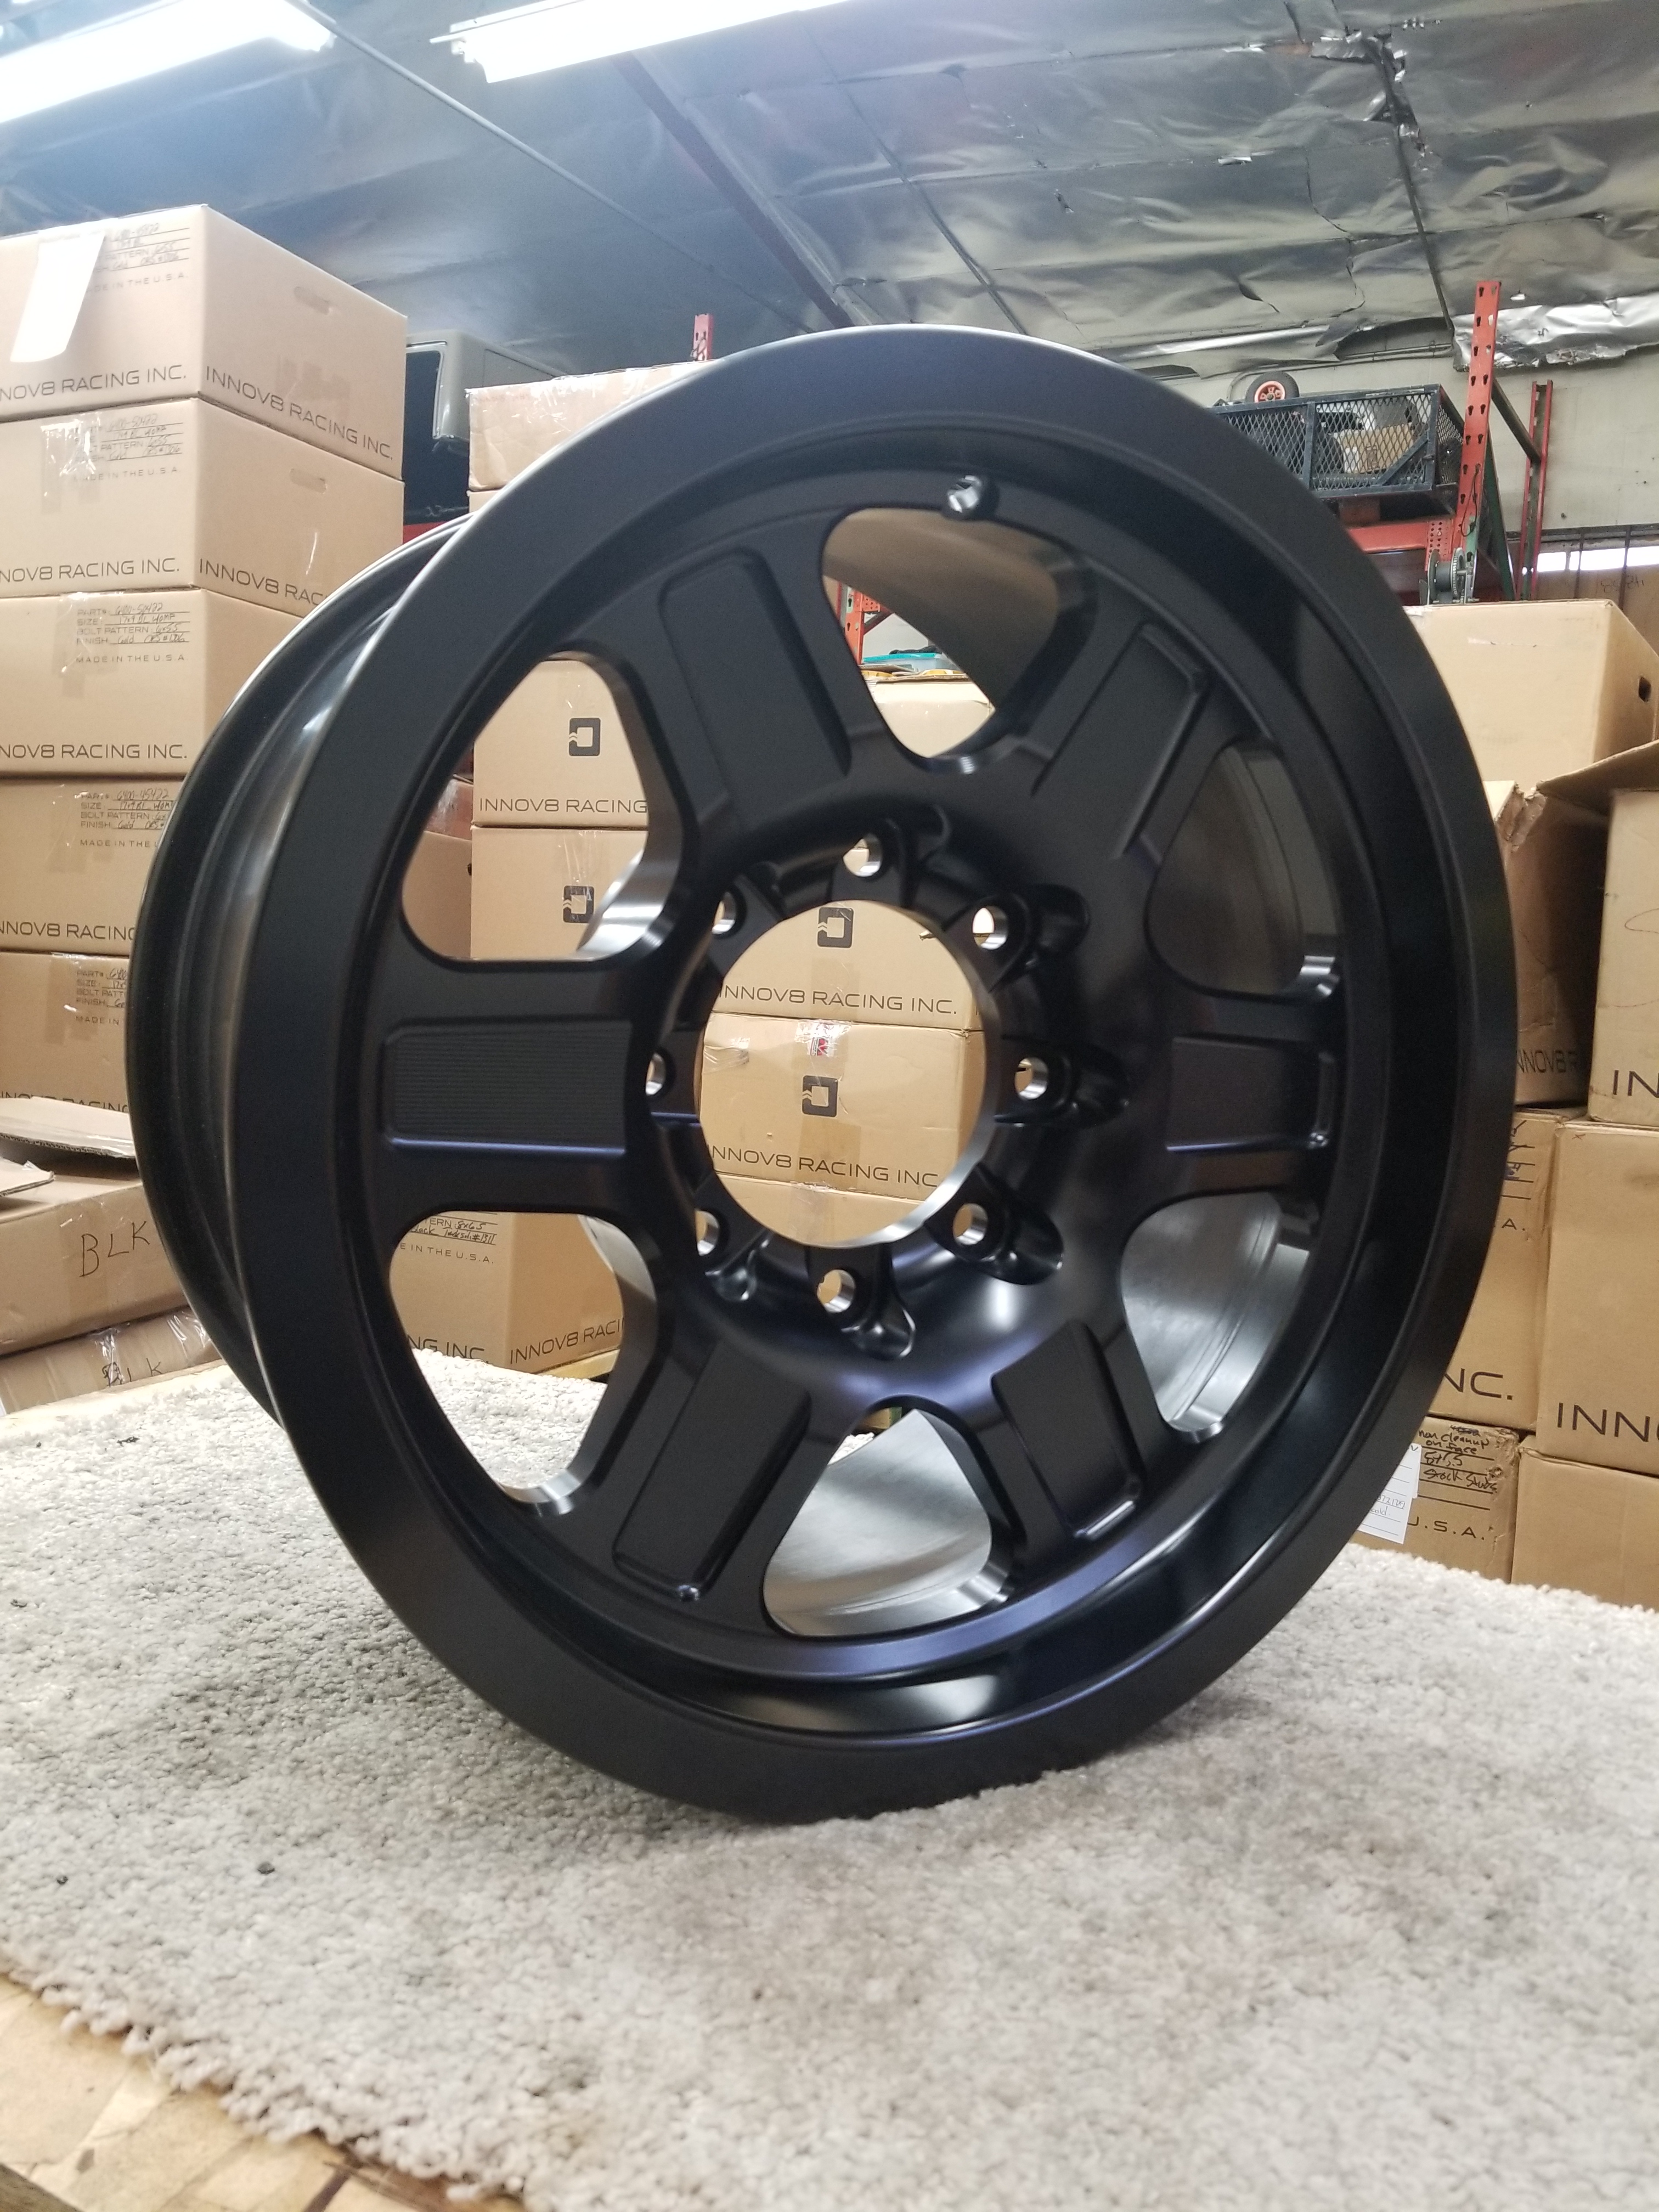 G400 Black 17in NonBL 8lug